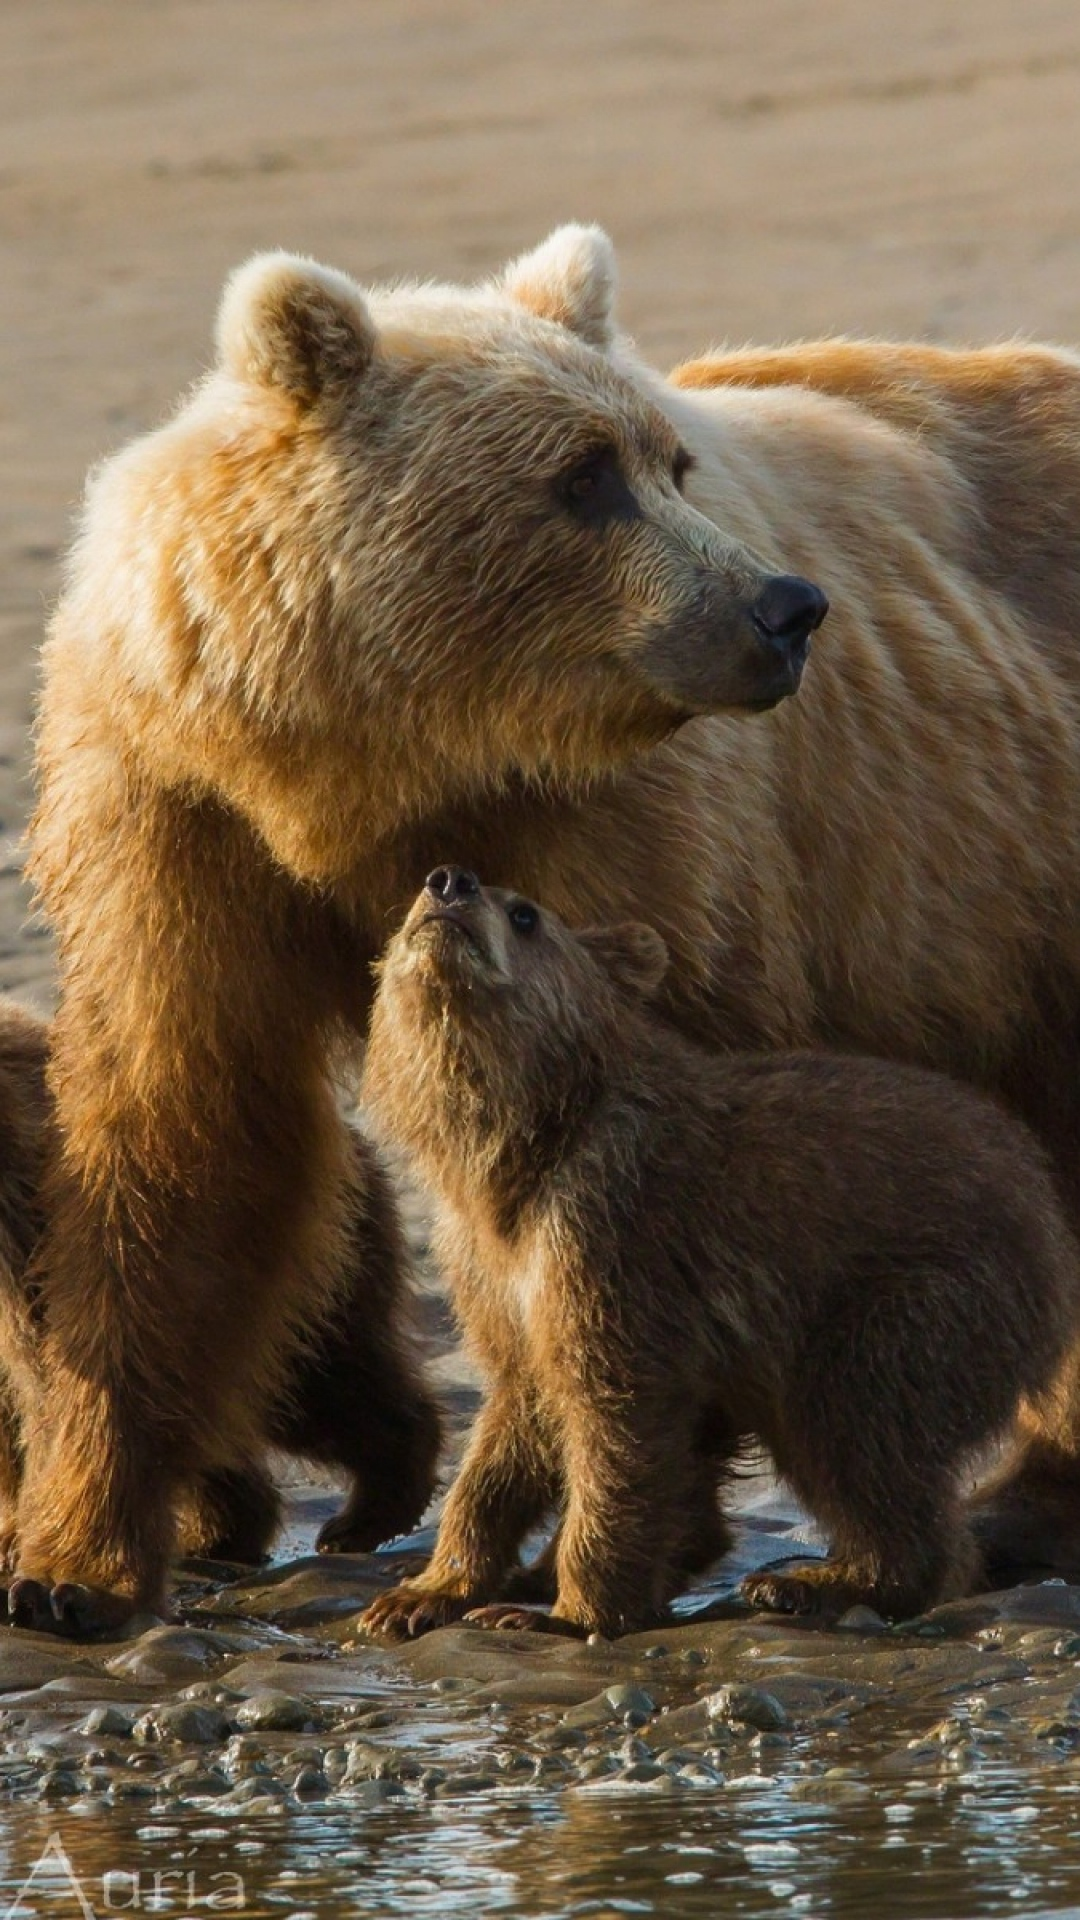 bears-cubs-family-sand-wallpaper-wp3603074